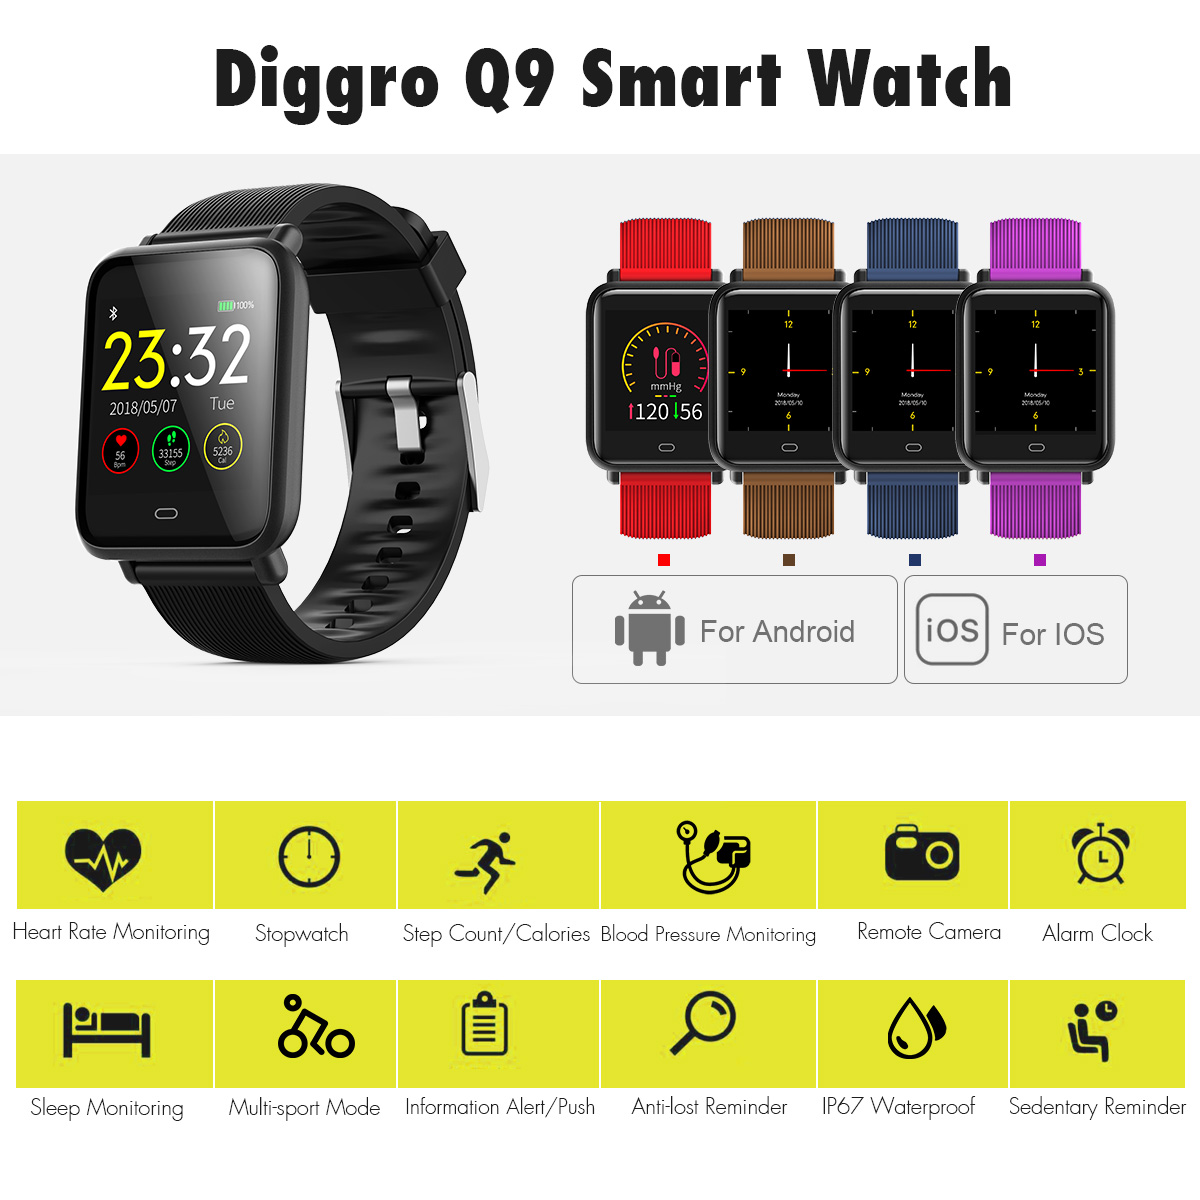 Details about Diggro Q9 Smart Watch Blood Pressure Heart Rate Monitor Sport  IP67 Smartwatch